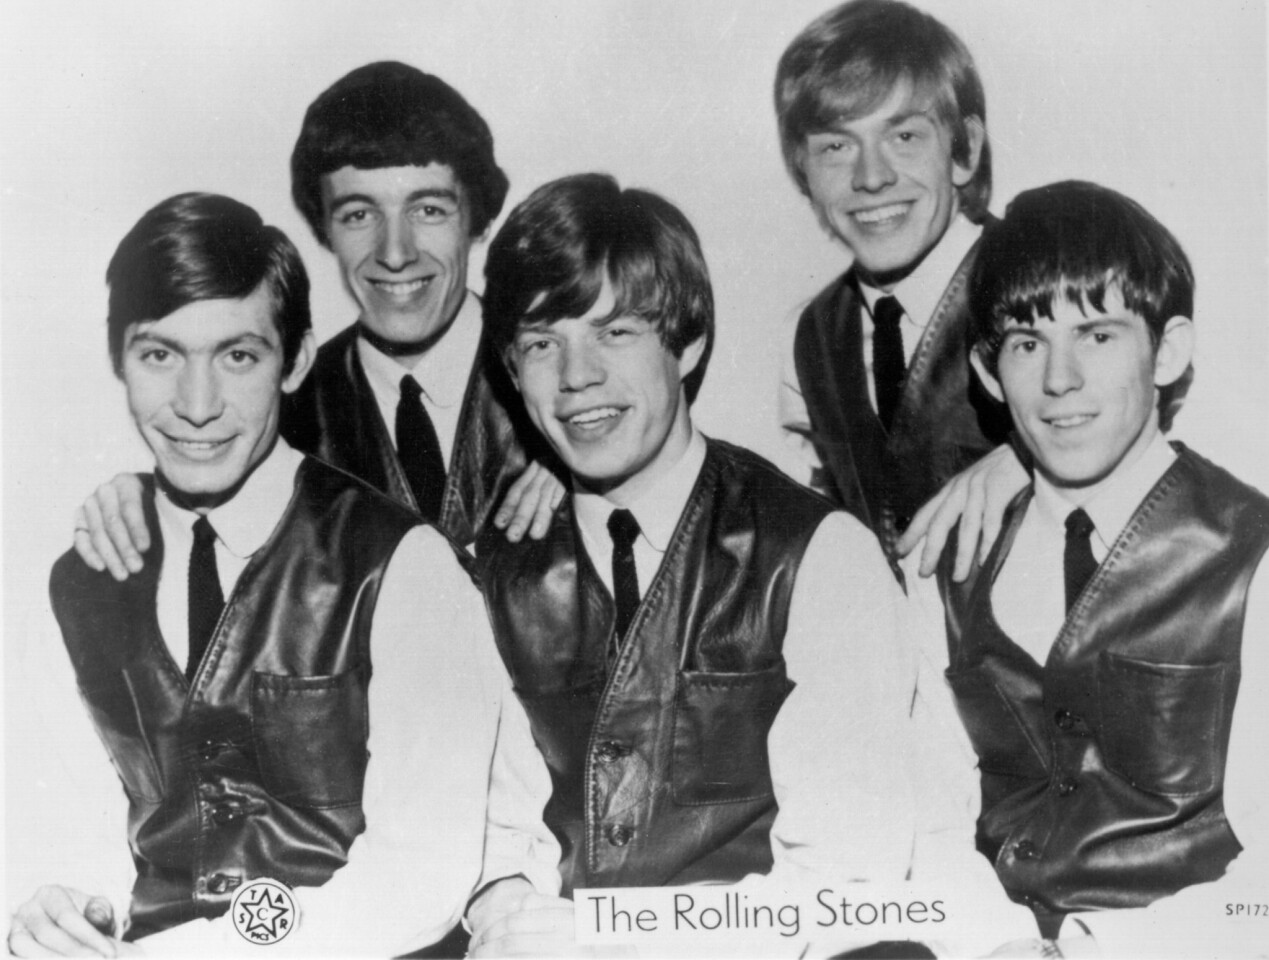 The Rolling Stones in 1962 in London. Charlie Watts, left, Bill Wyman, Mick Jagger, Brian Jones and Keith Richards.